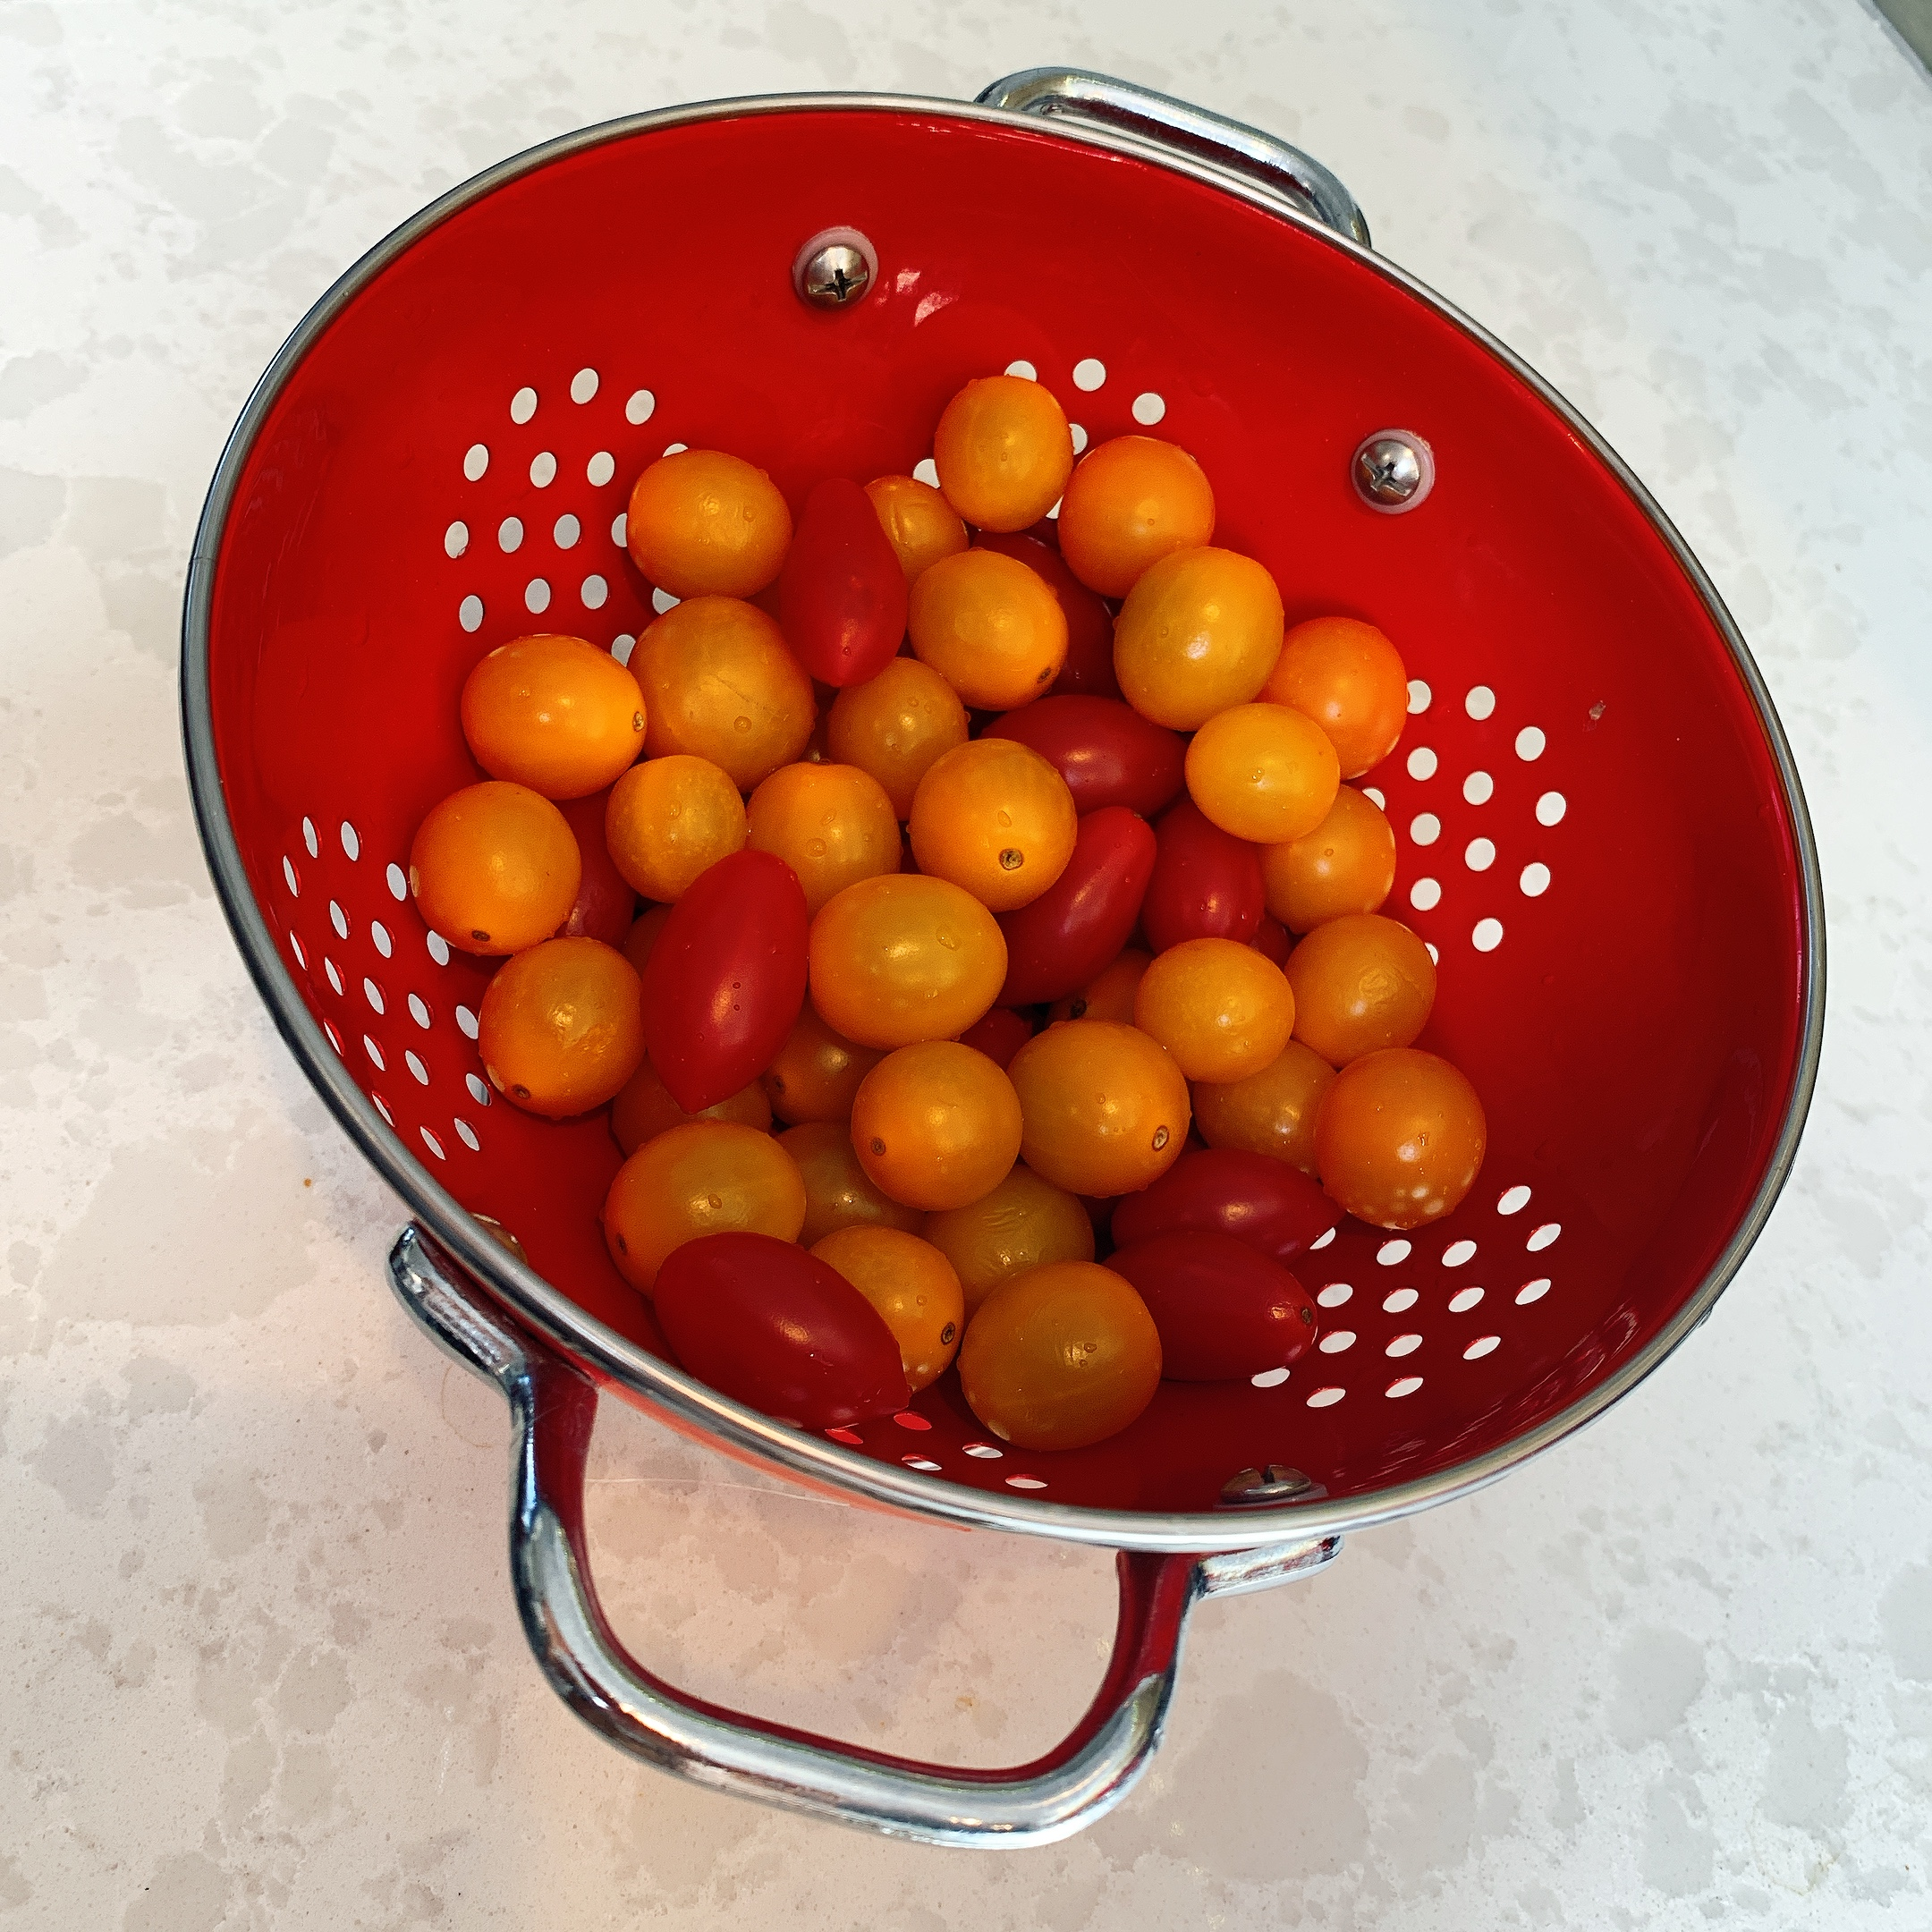 red colander filled with yellow and red cherry tomatoes